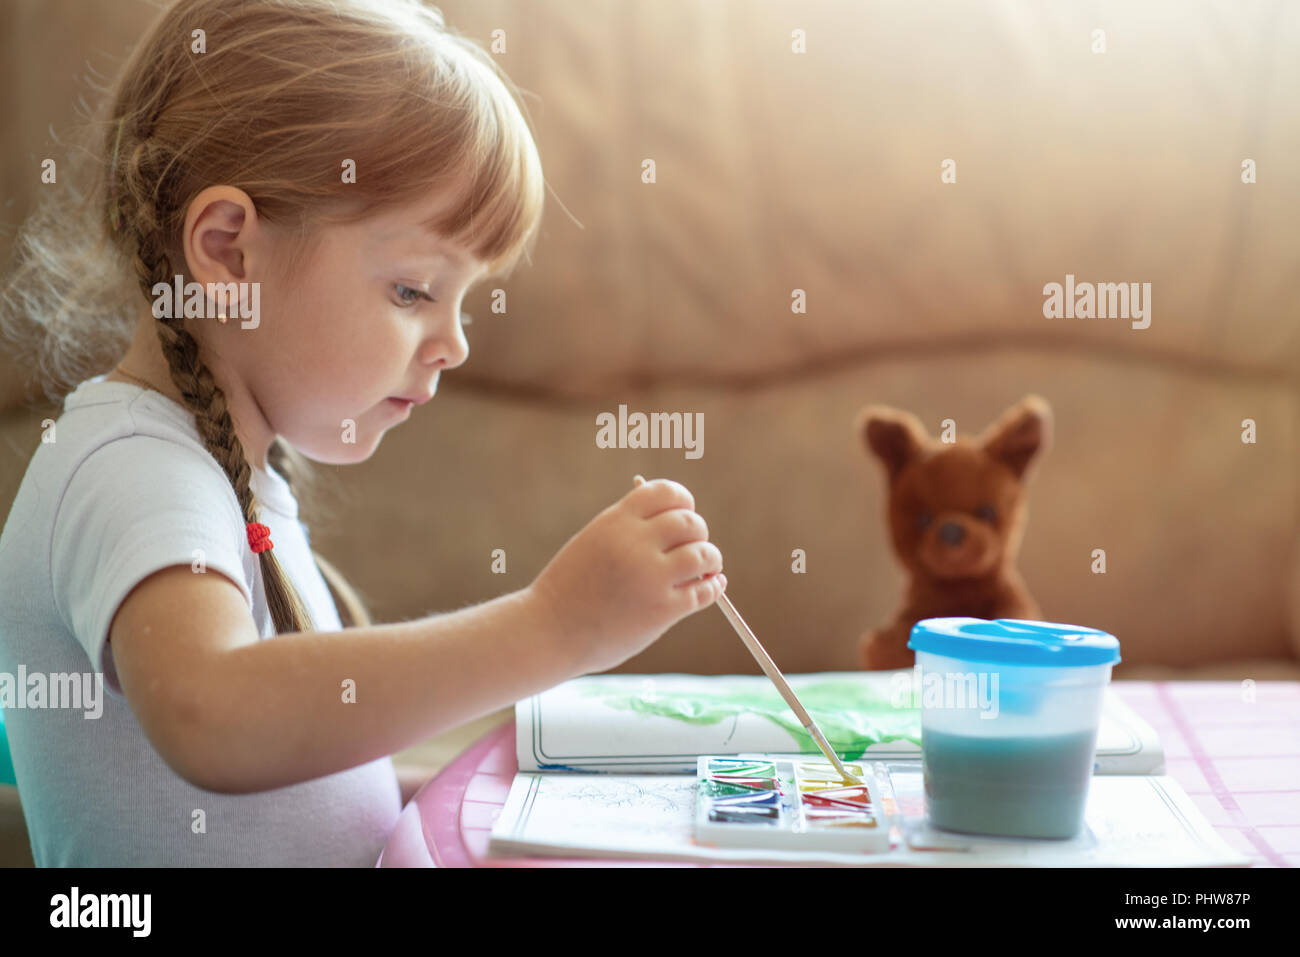 Little four years old caucasian girl coloring image by paint sitting at the table, child development Stock Photo